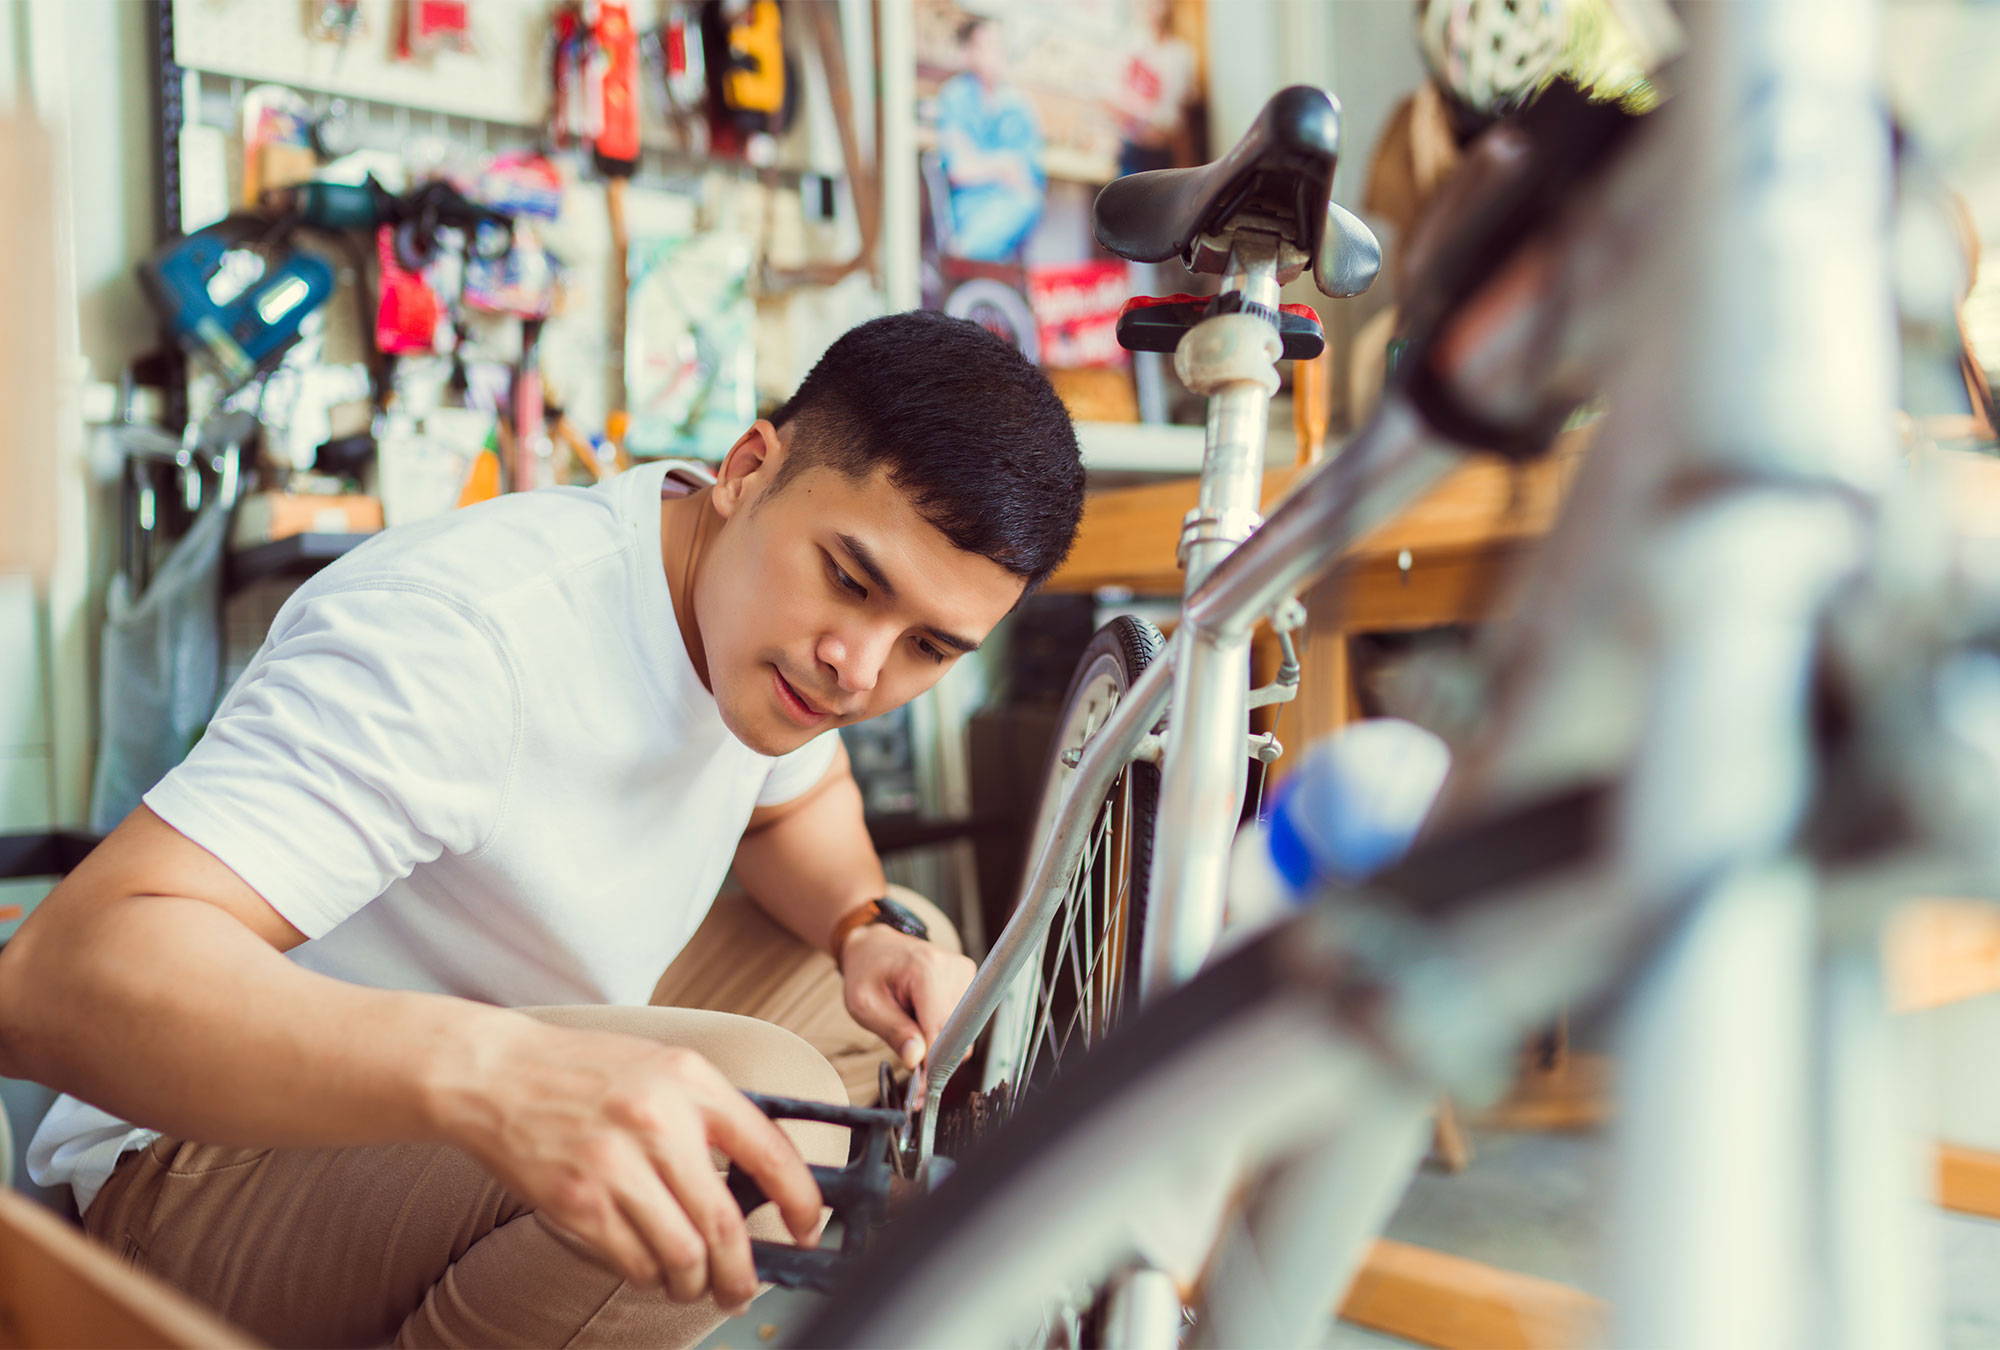 Young man fixes a bicycle